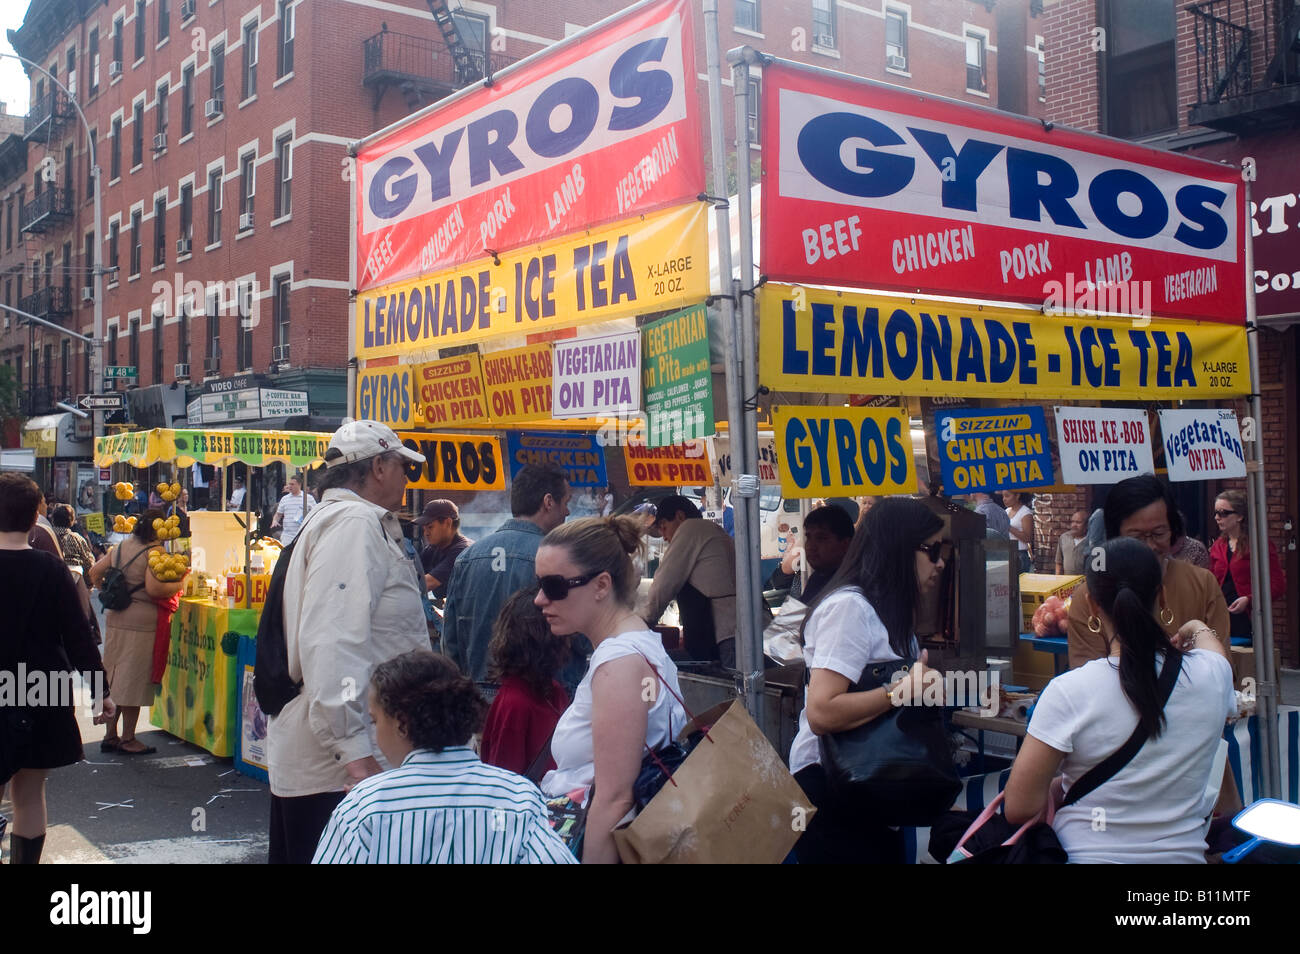 Greek food at the famous Ninth Avenue Food Festival in New York - Stock Image